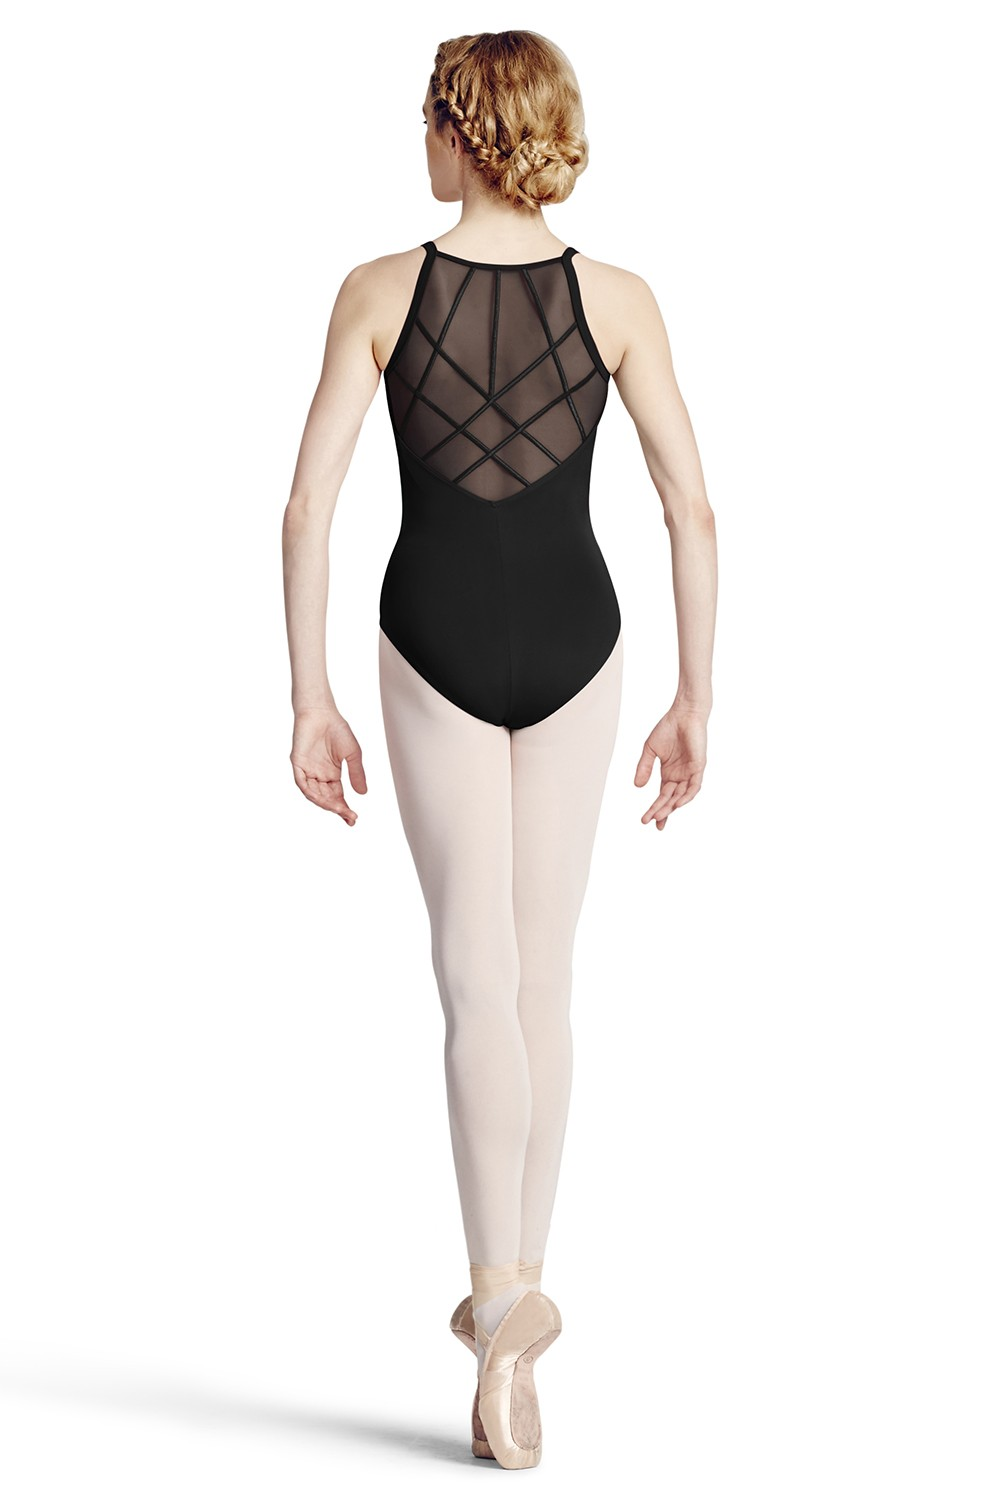 Persei Womens Camisole Leotards